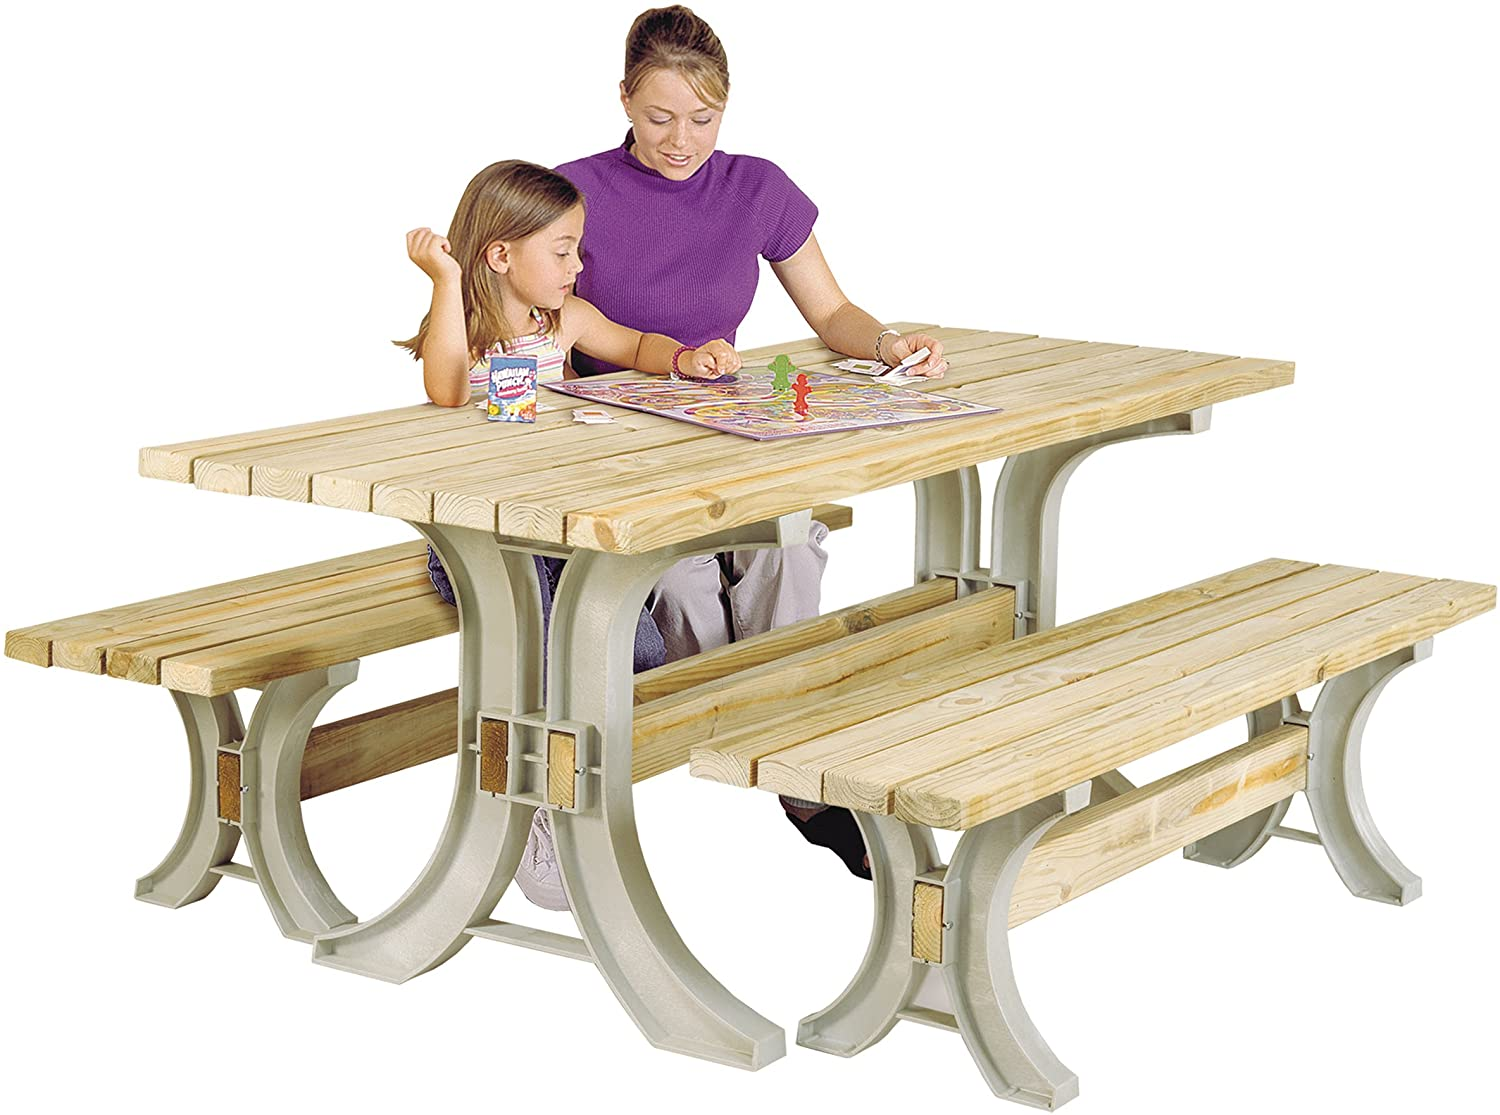 Picnic Table Bench Frames Brackets Kit Heavy Duty Structural Resin Patio Outdoor